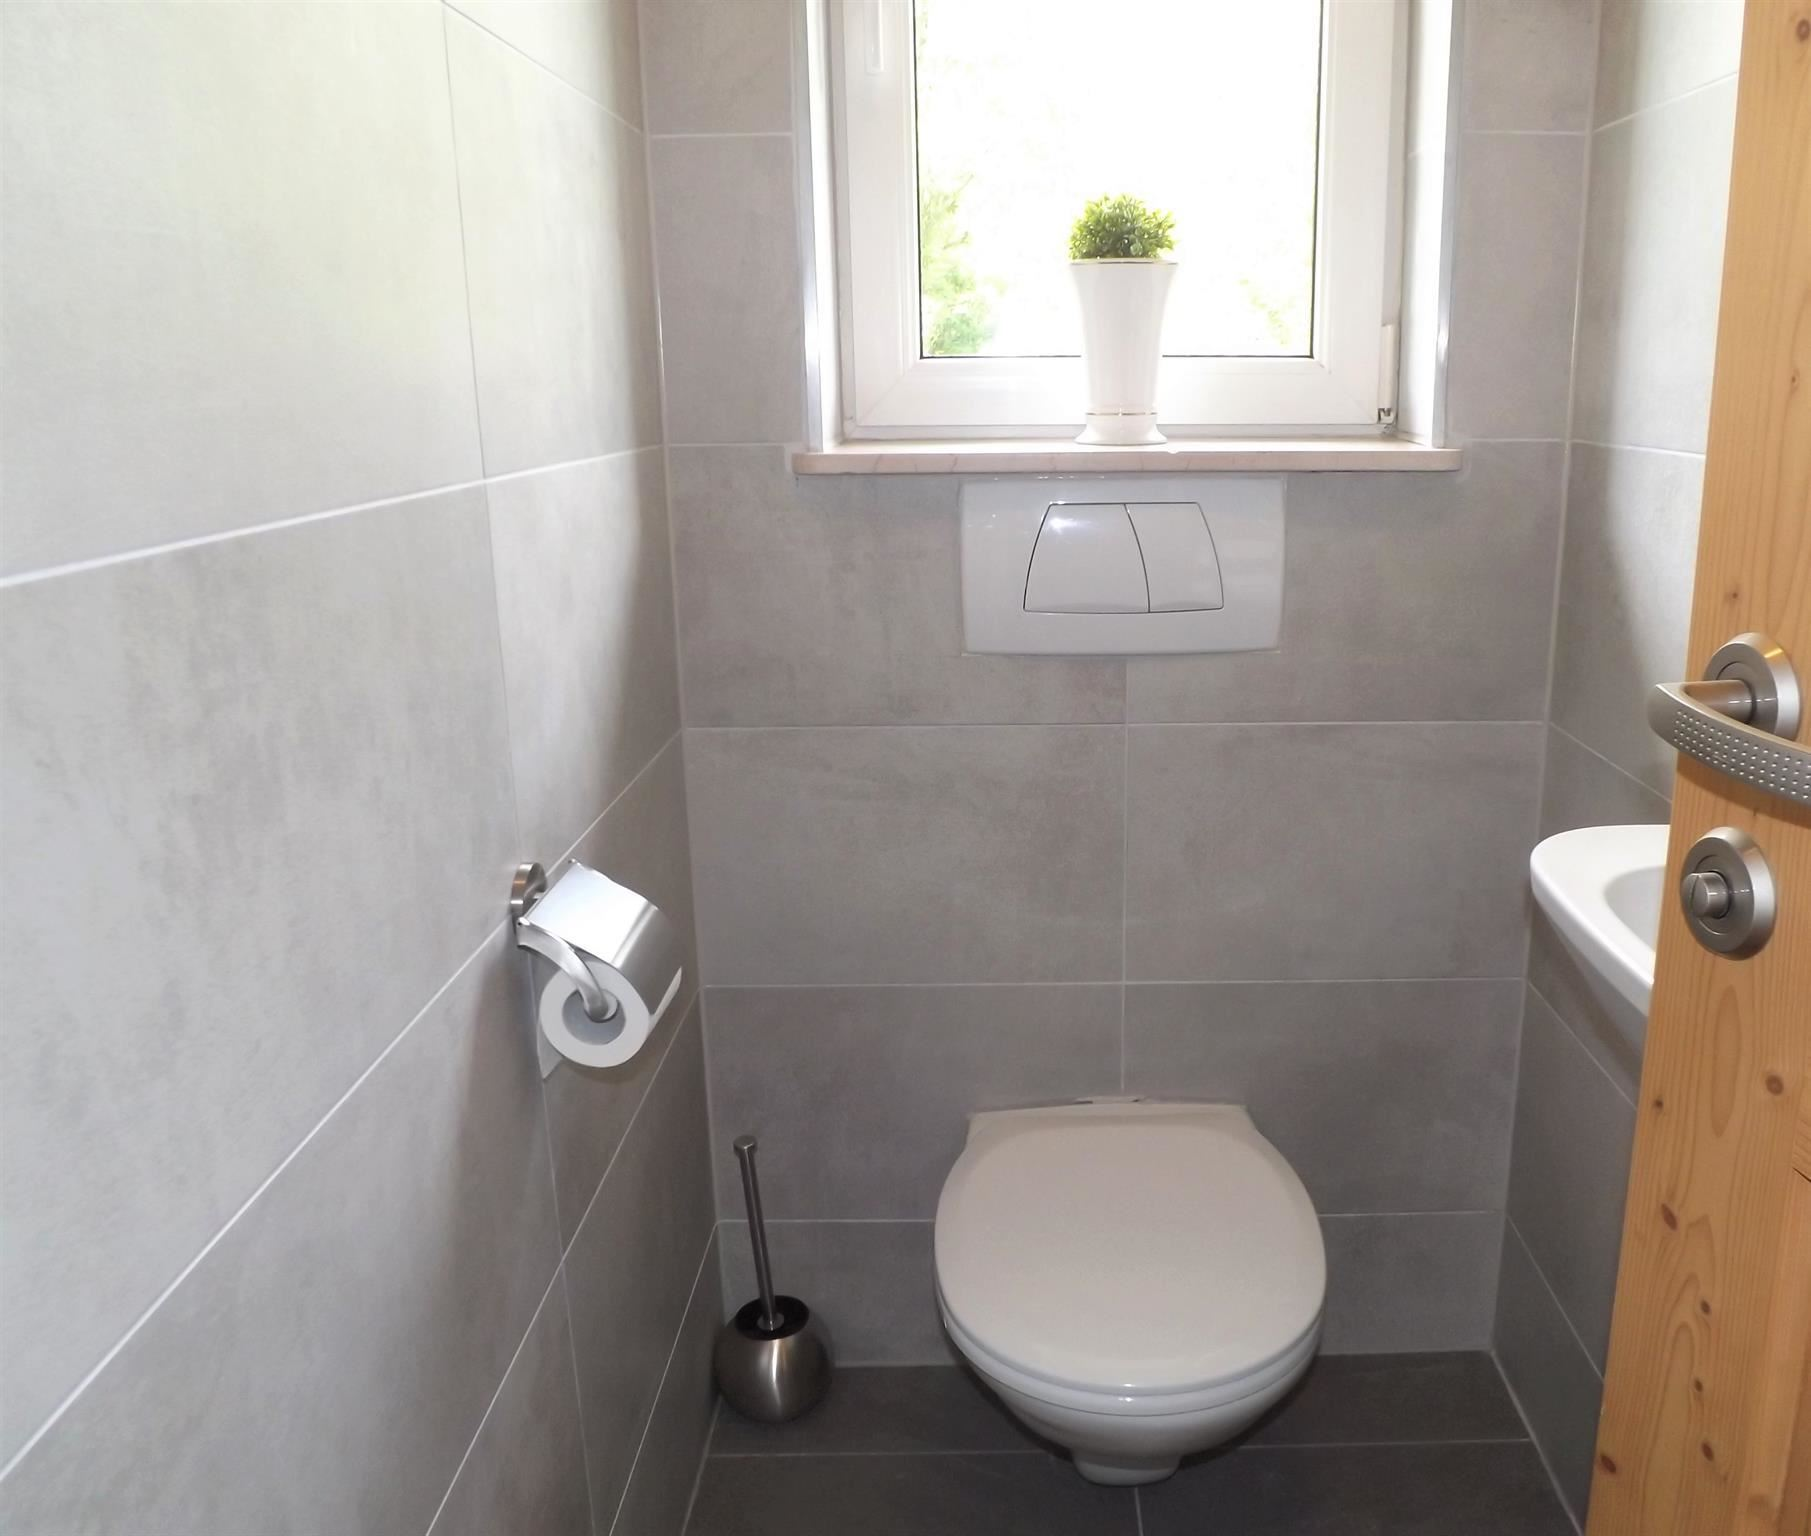 6/8 PERSON APARTMENT - SEPARATE TOILET